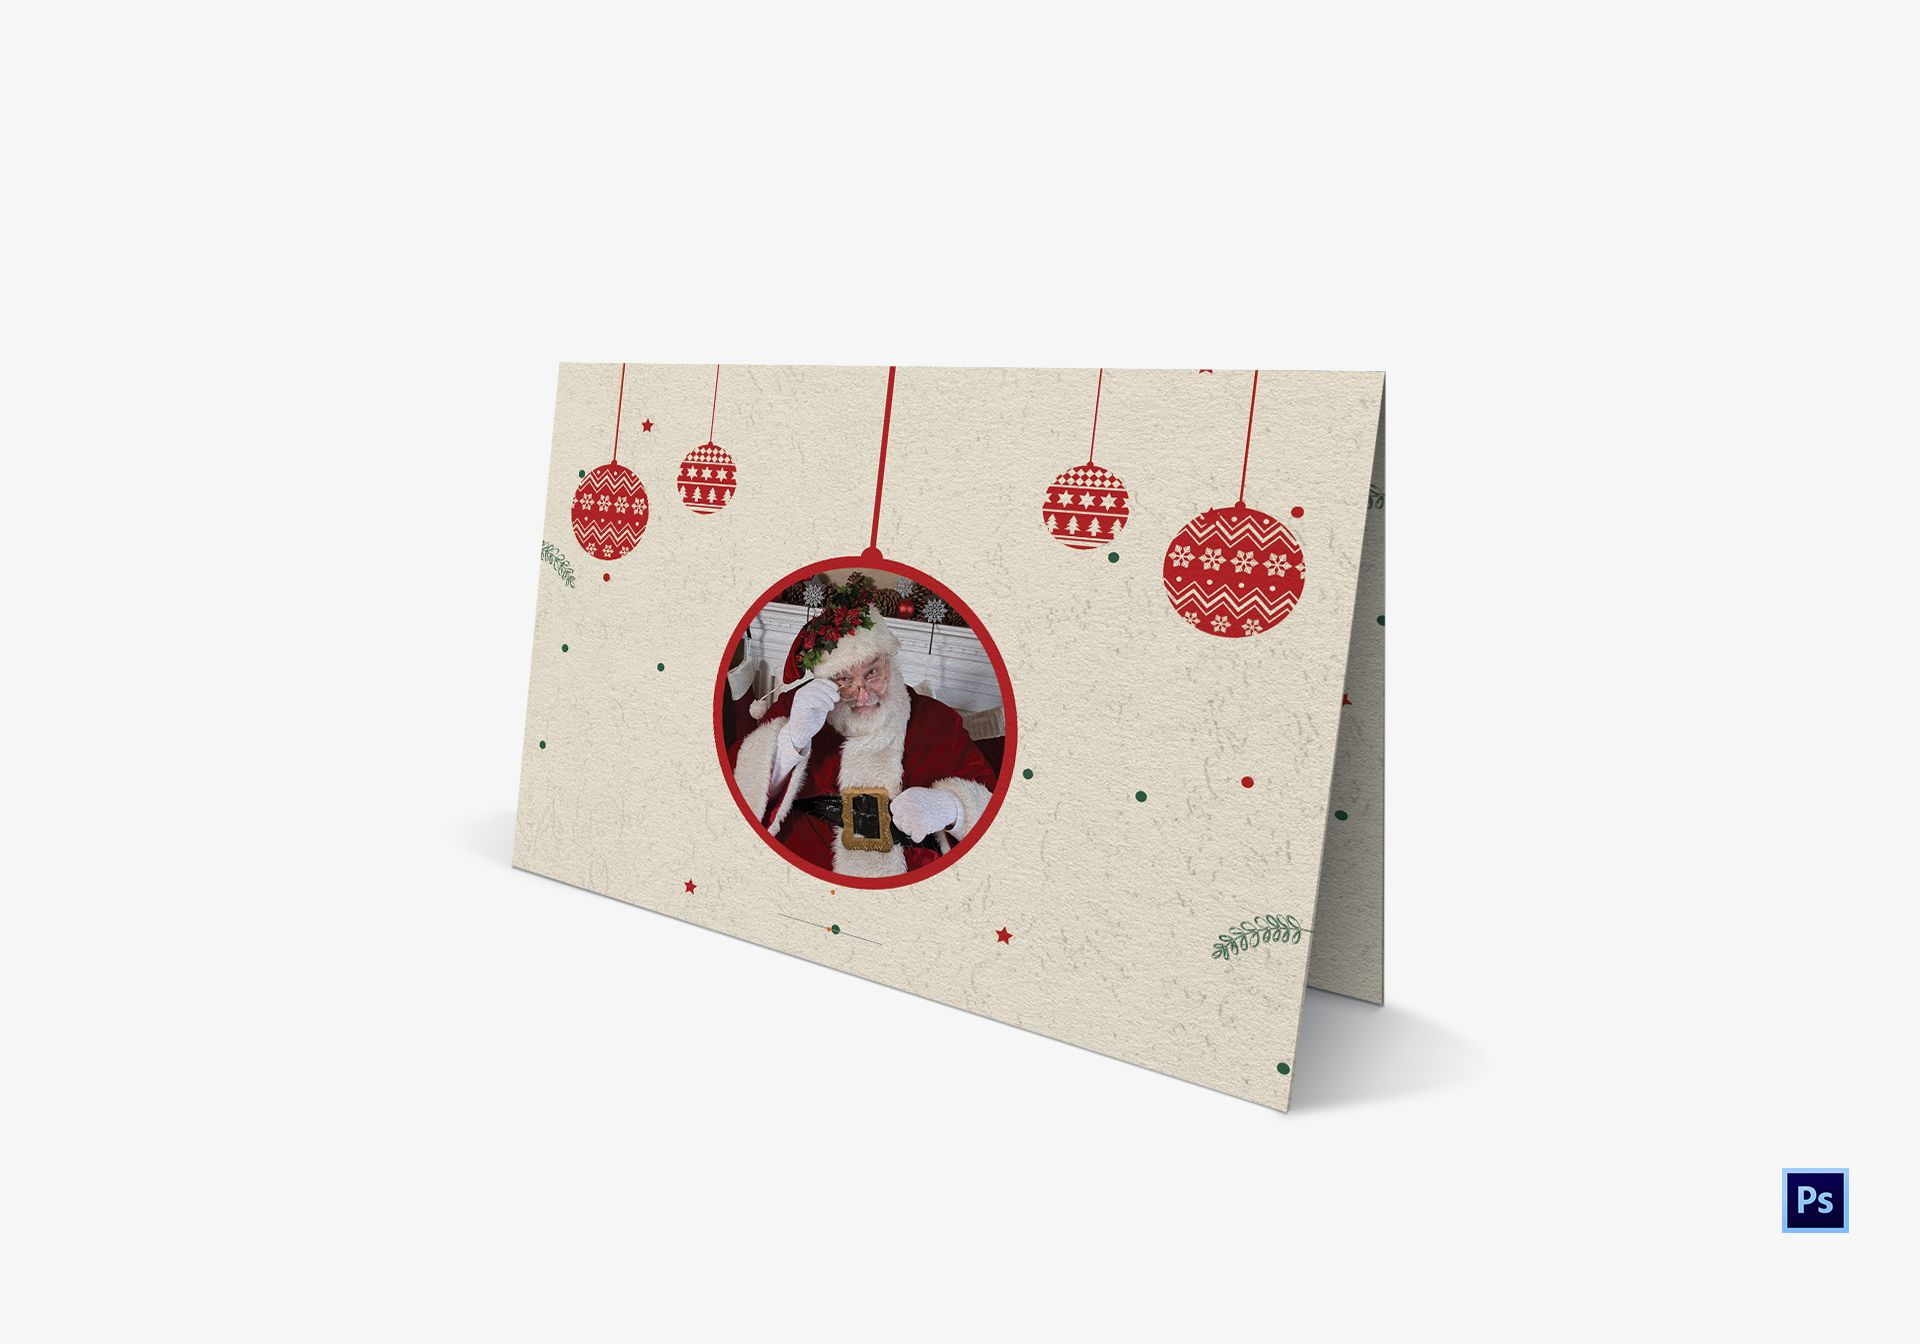 Sparkle Christmas Tree Card Template in Adobe Photoshop